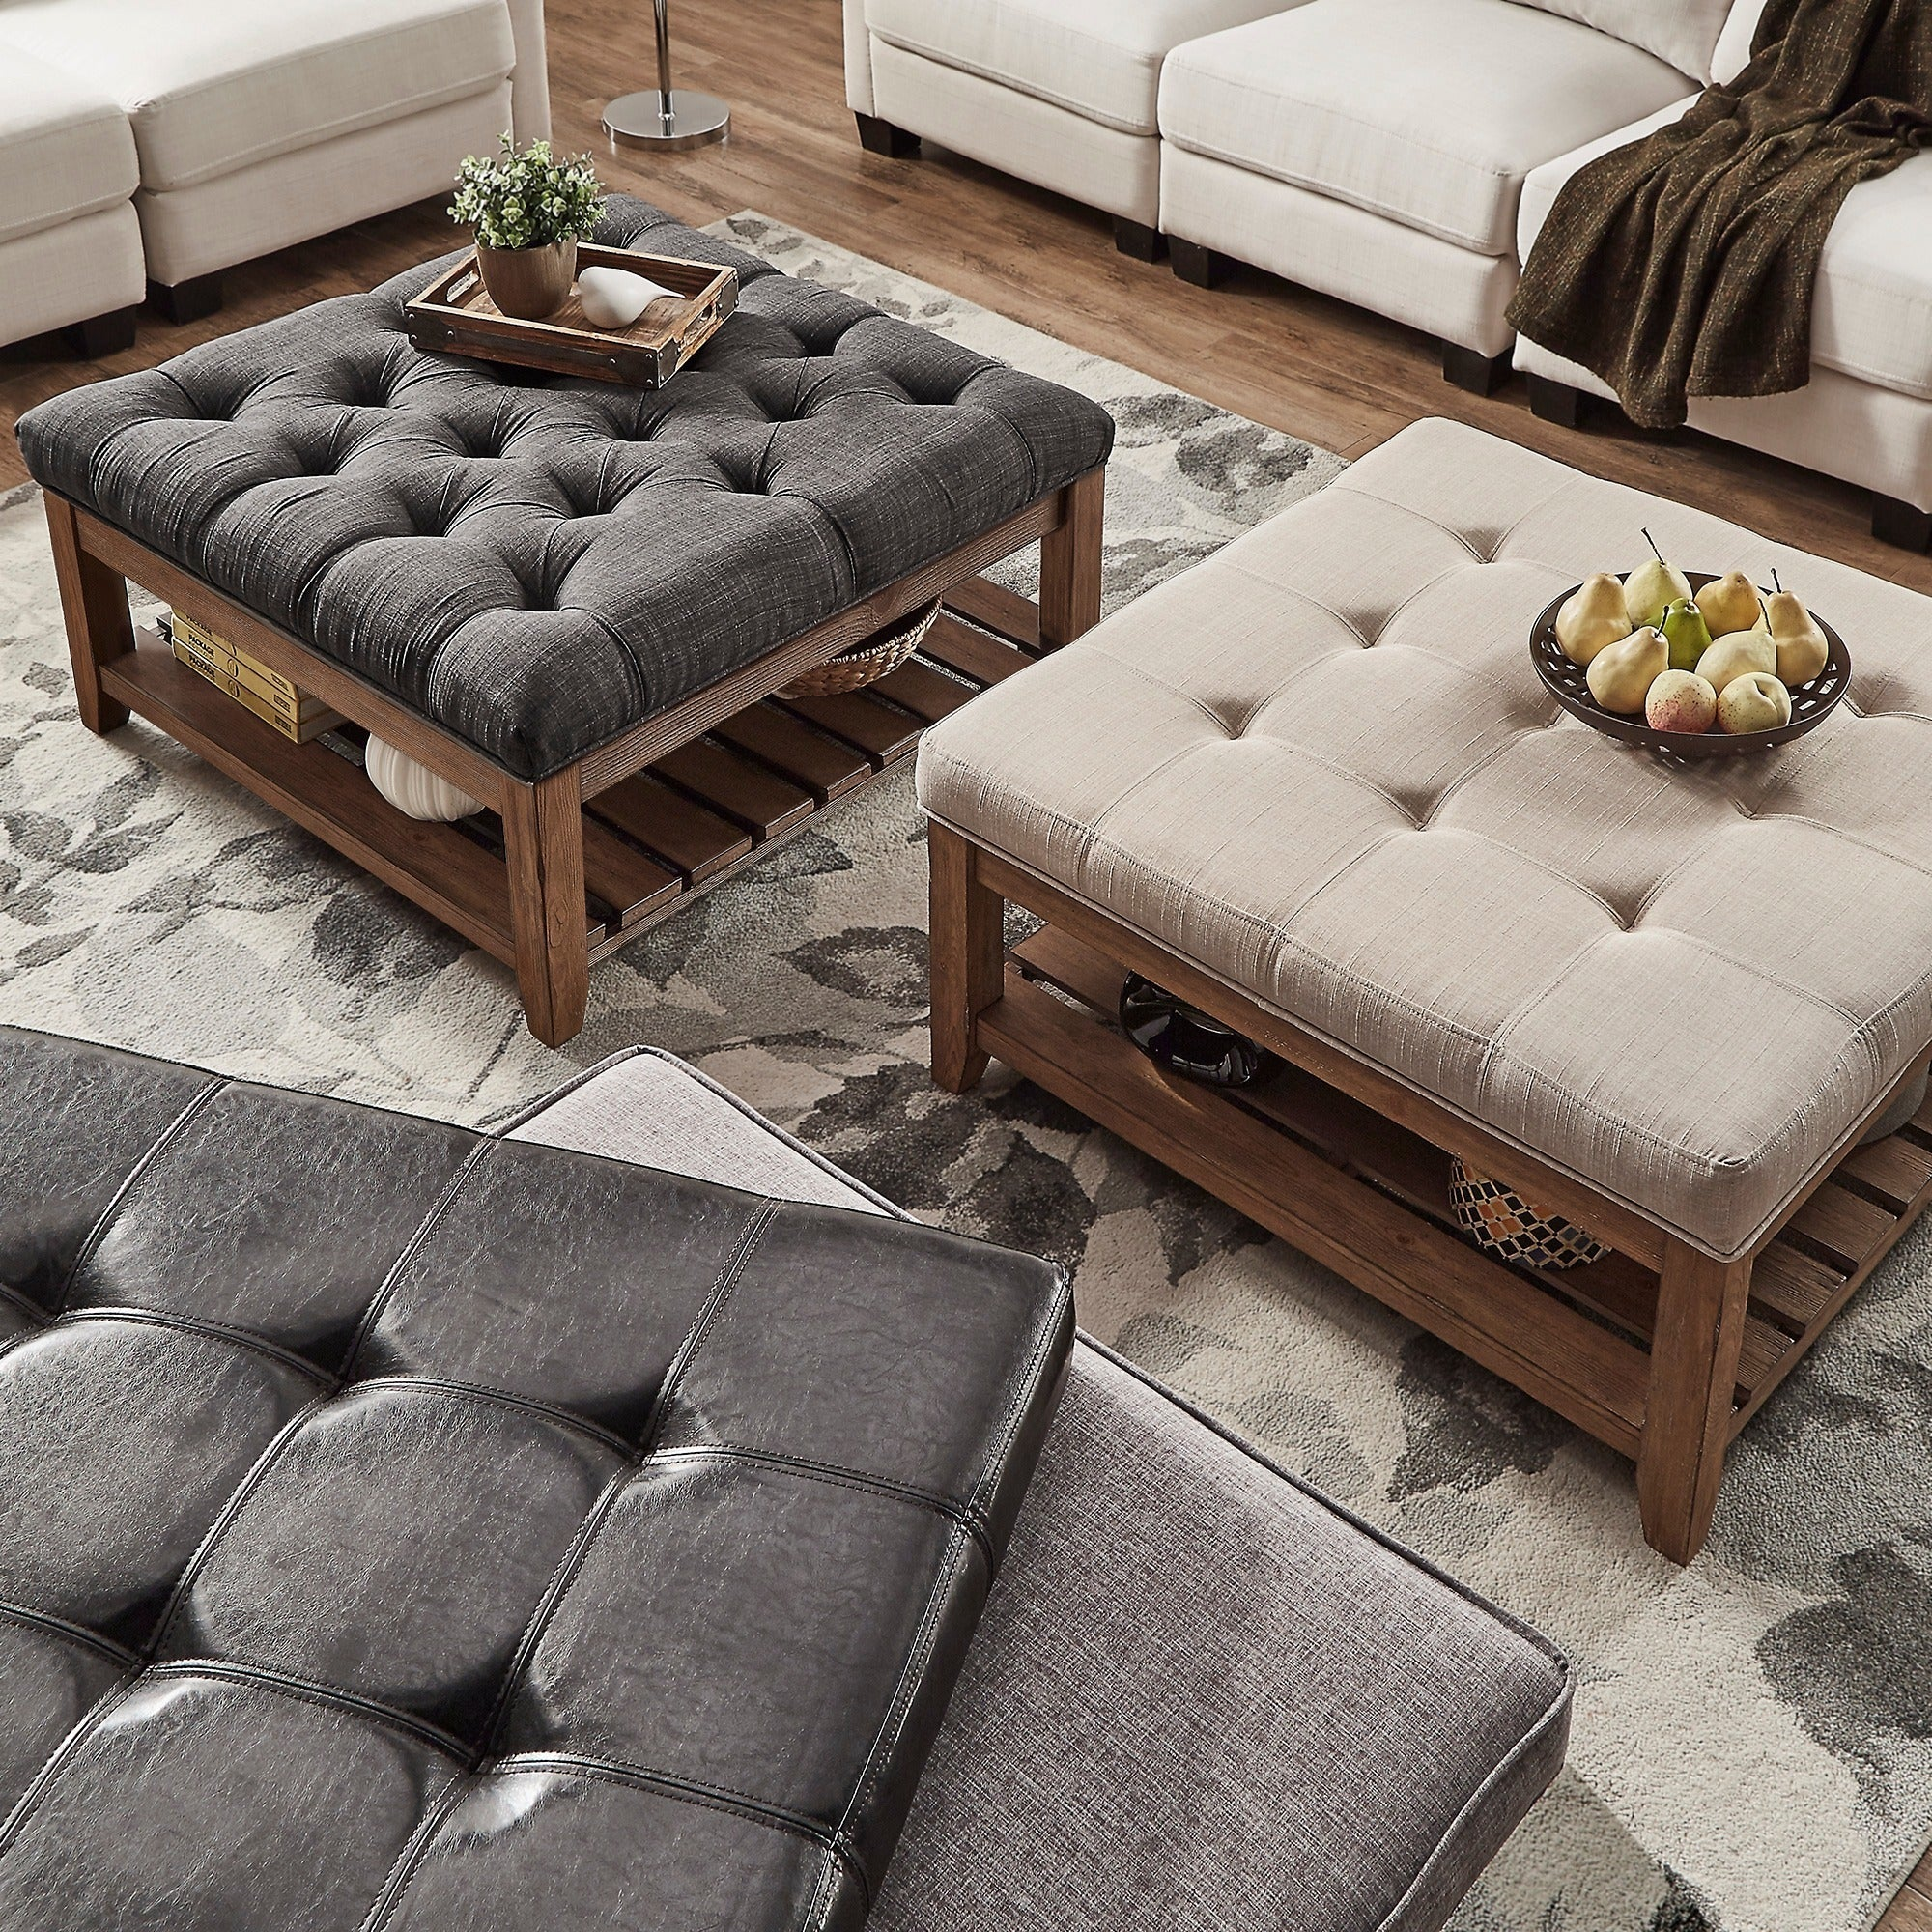 Incredible Details About Lennon Pine Planked Storage Ottoman Coffee Table By Inspire Ibusinesslaw Wood Chair Design Ideas Ibusinesslaworg